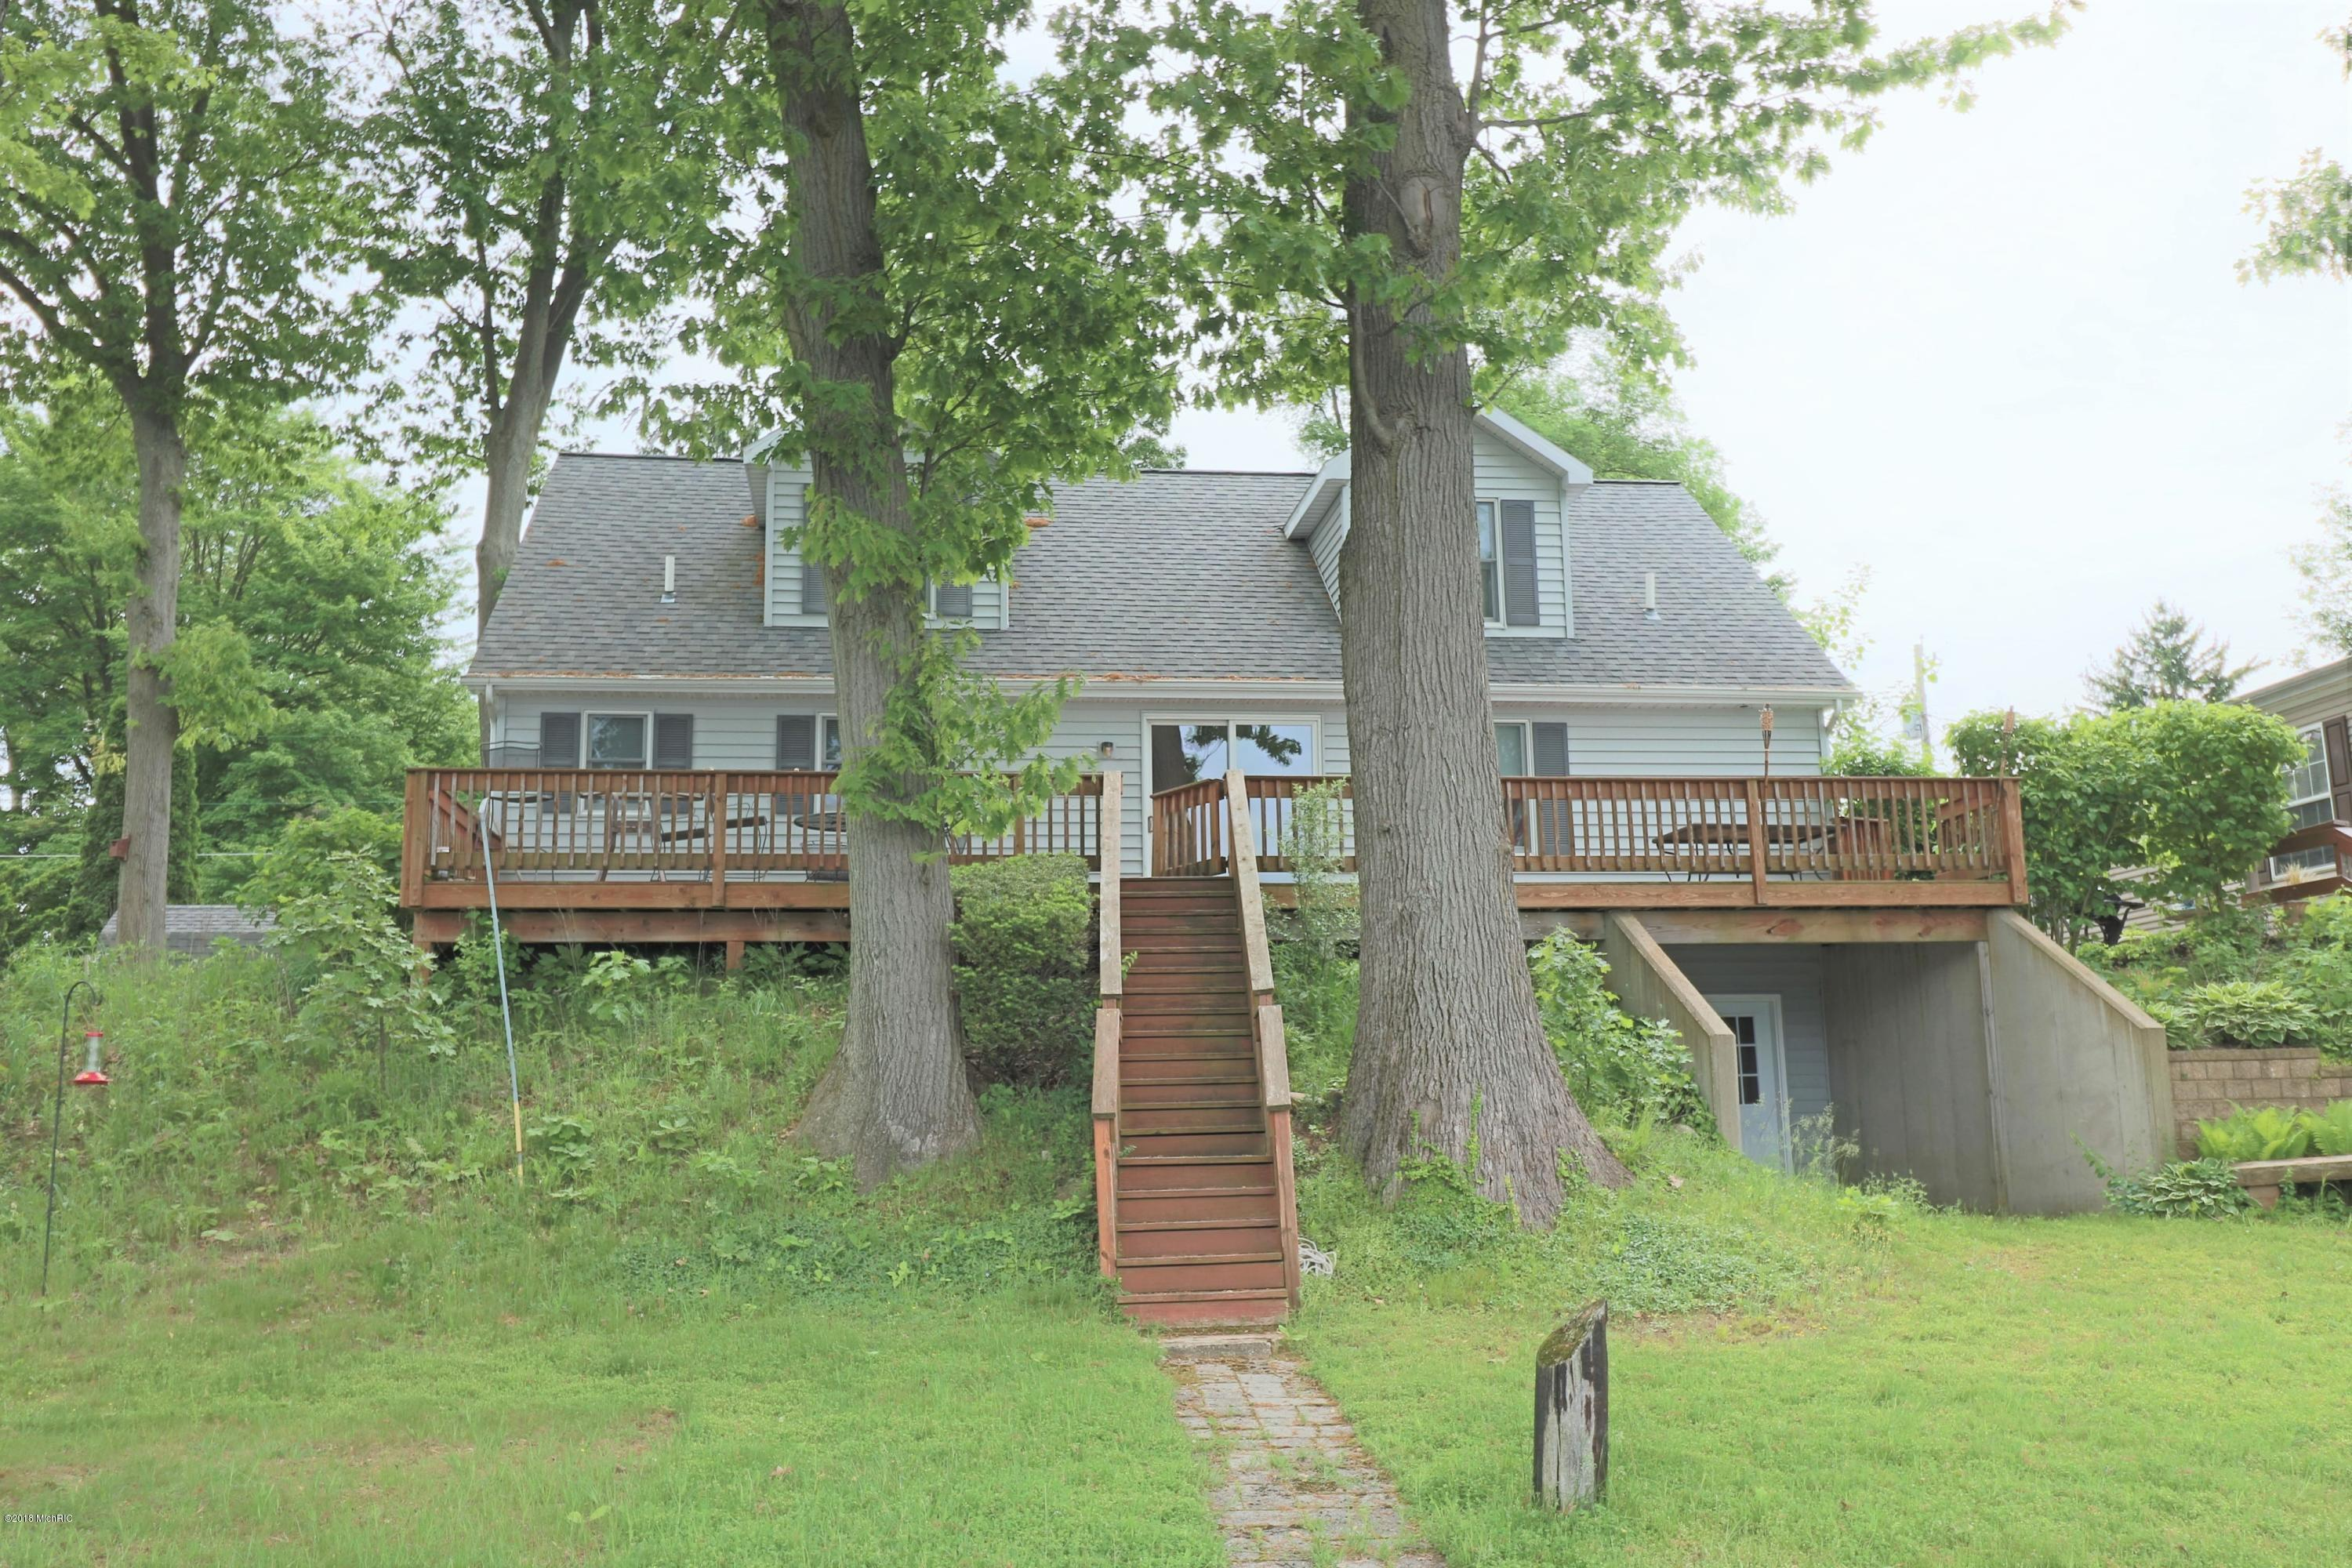 50384 Cable Lakeview , Dowagiac, MI 49047 Photo 1